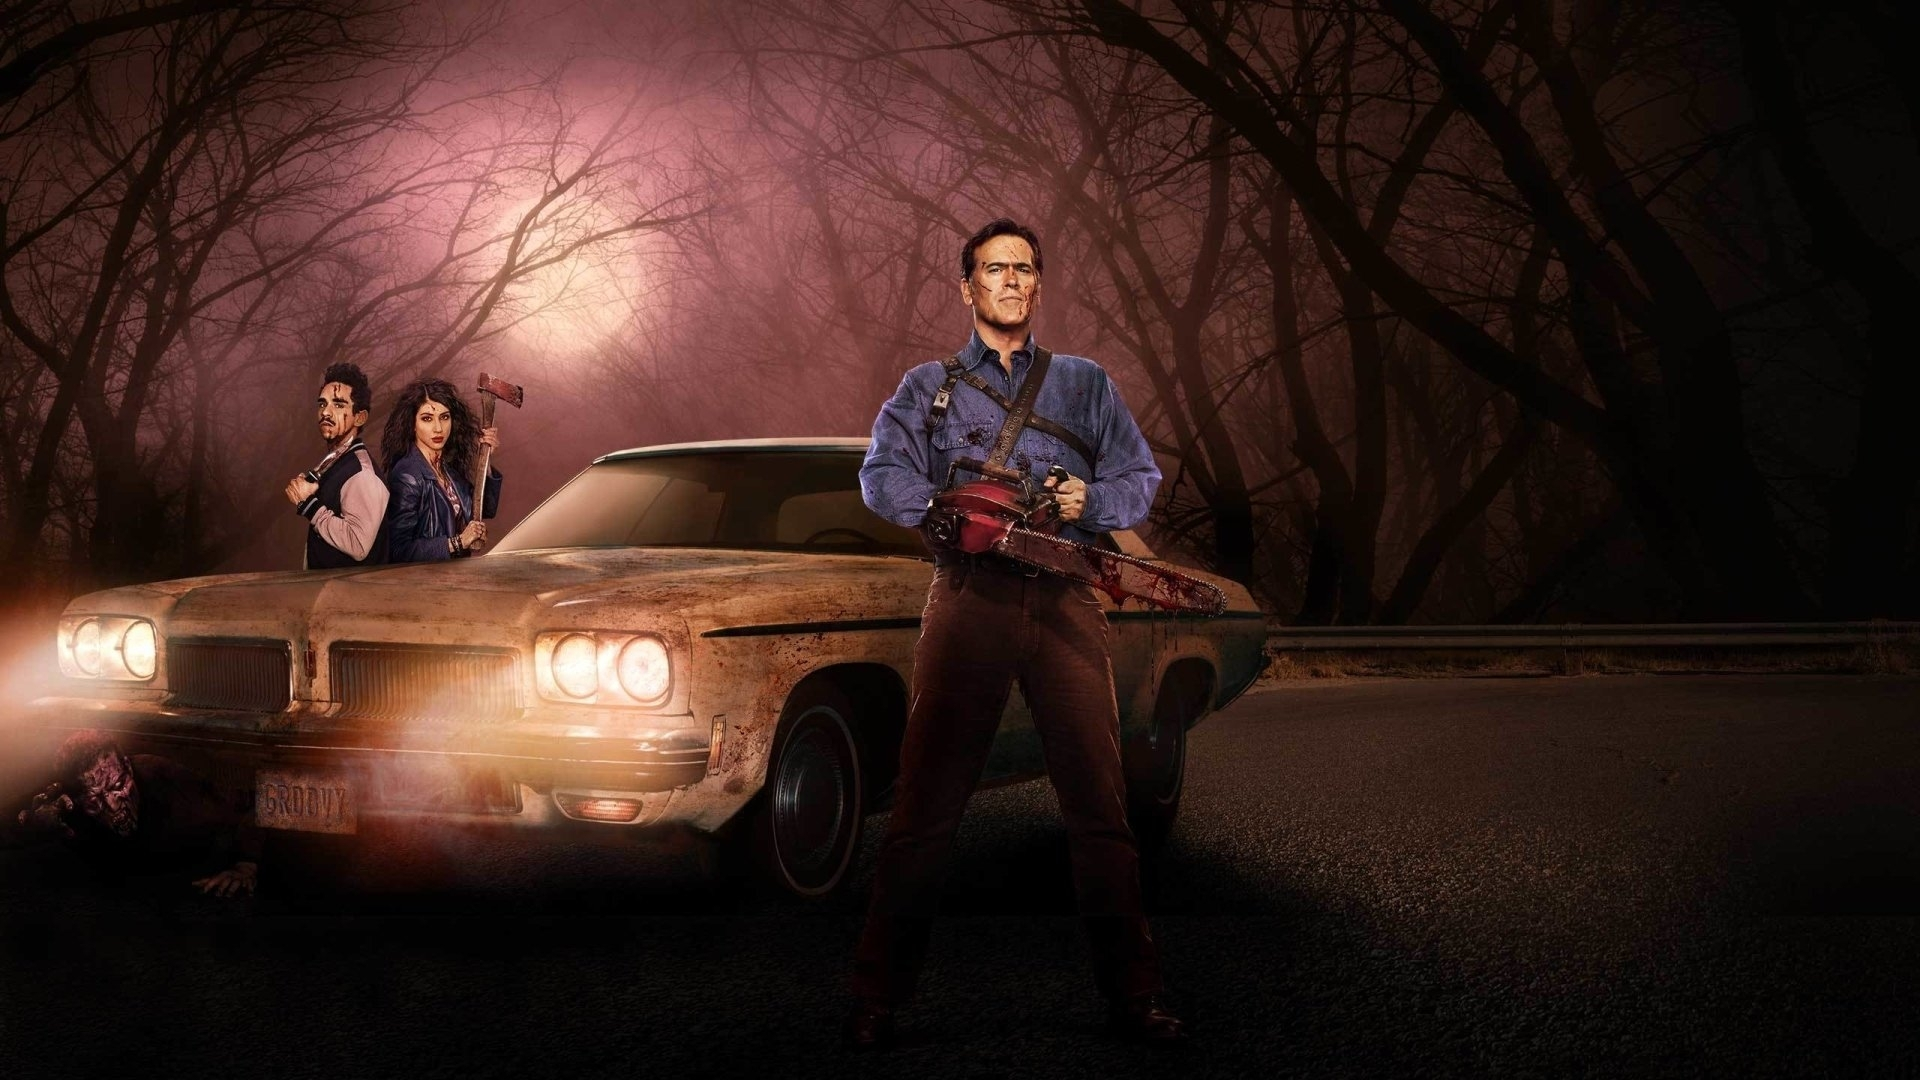 10 New Ash Vs Evil Dead Wallpaper FULL HD 1080p For PC Desktop